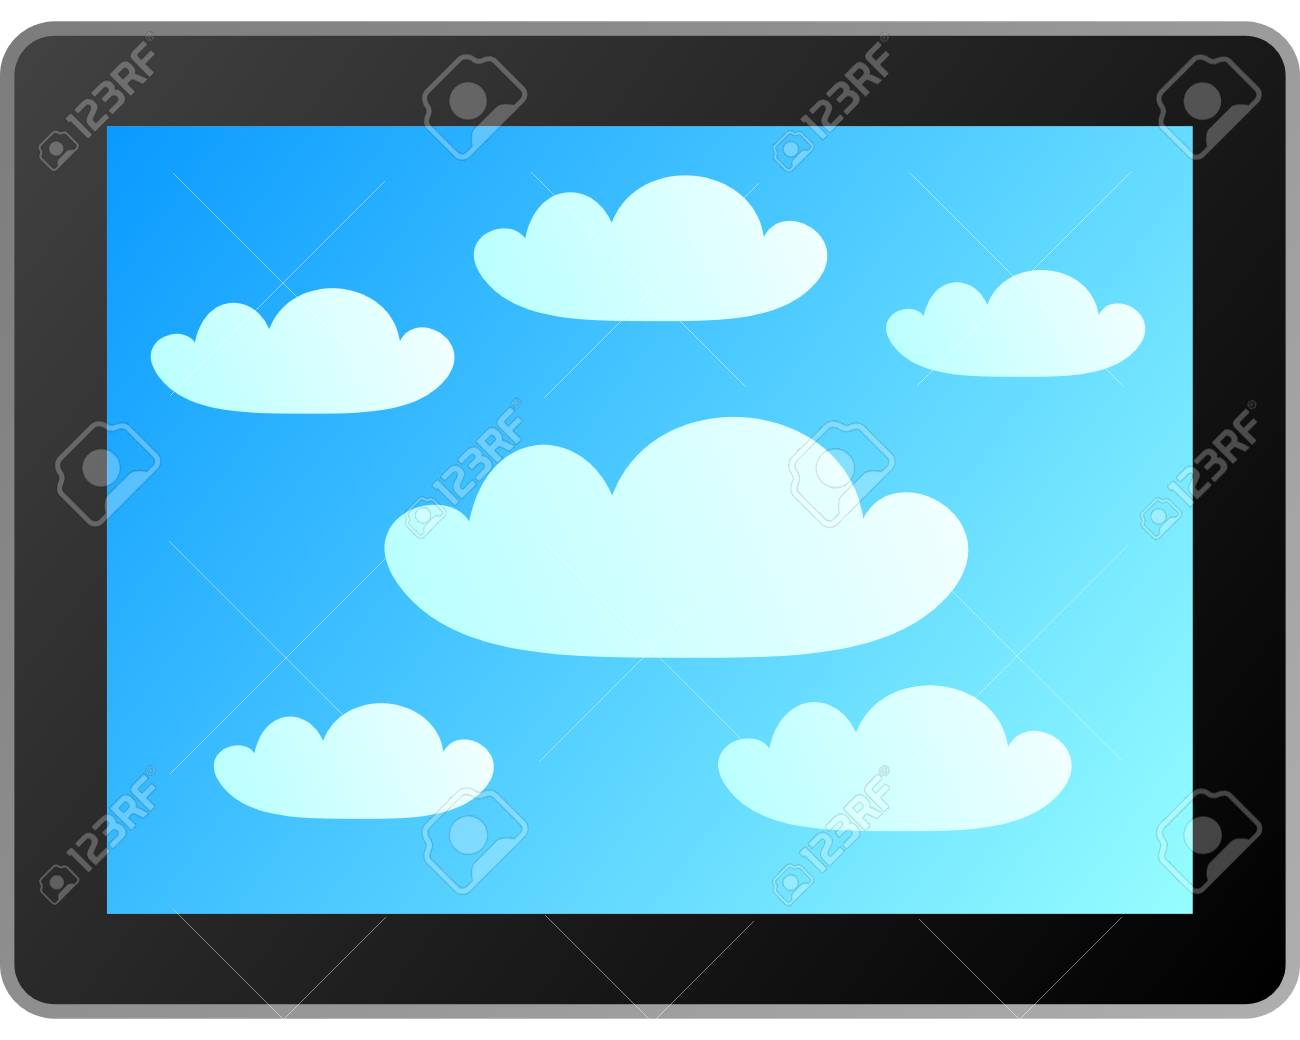 Cloud computing Stock Vector - 11559601